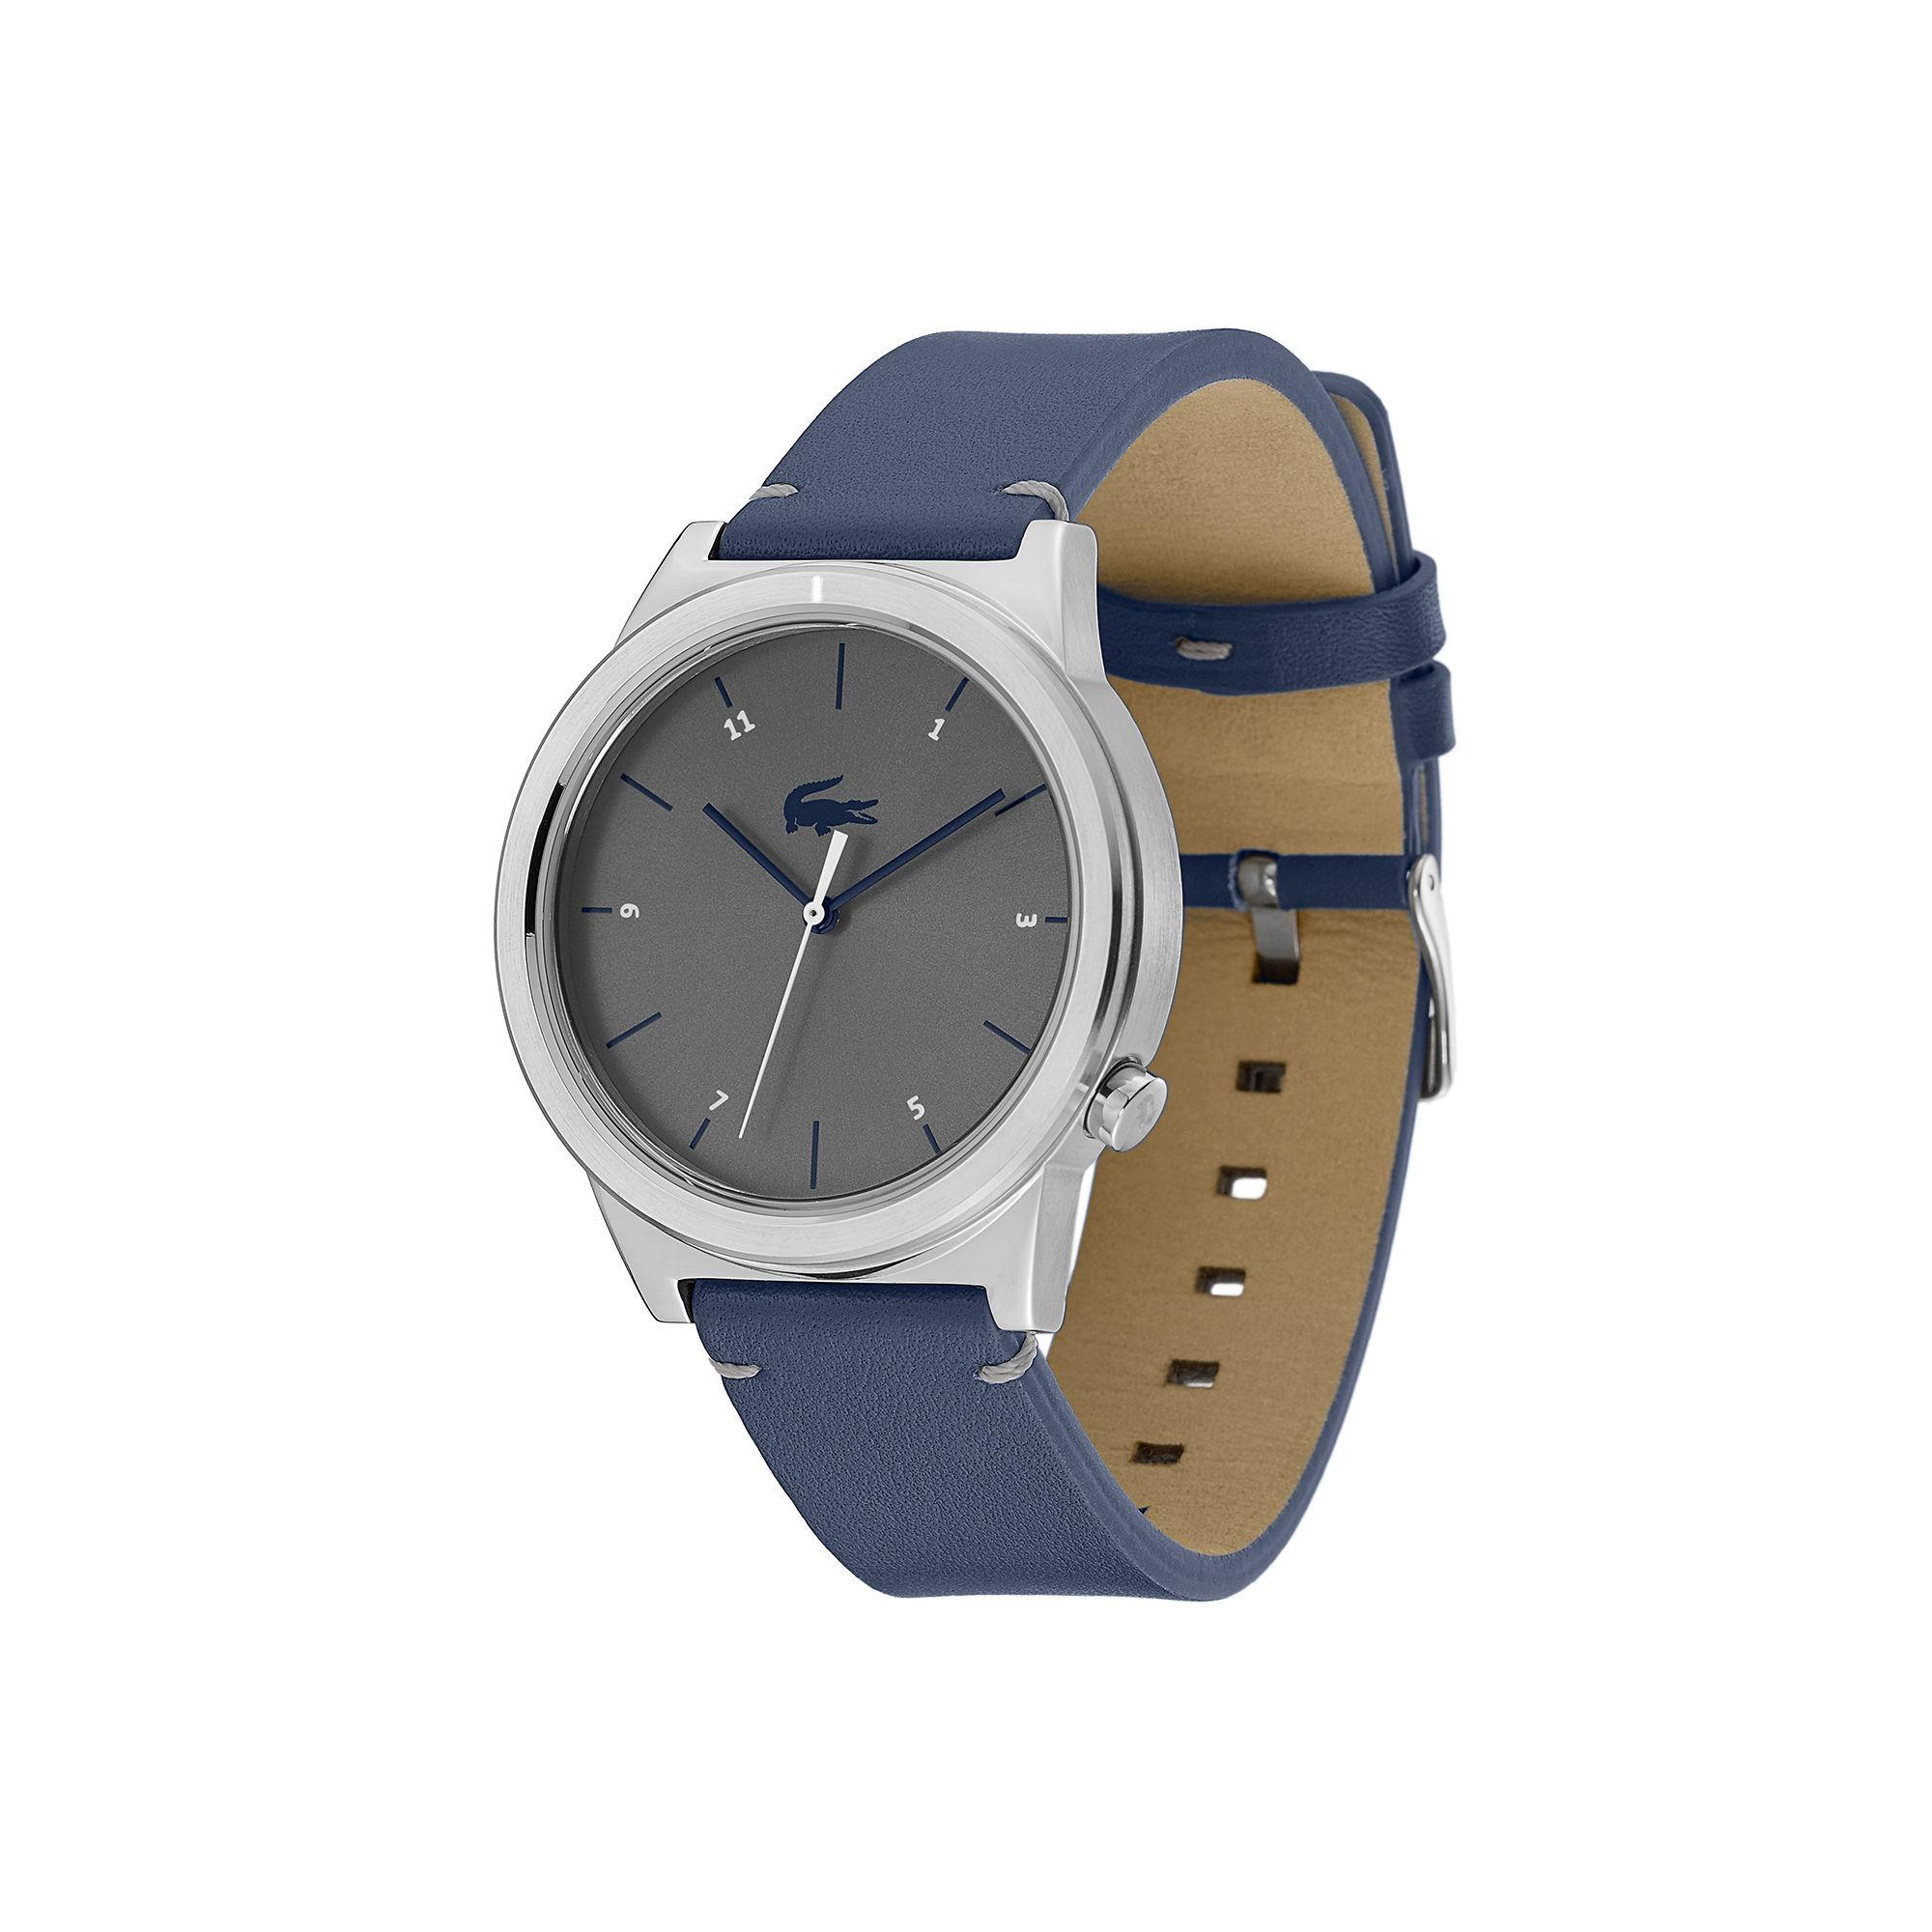 Lacoste - Motion Watch With Blue Leather Strap for Men - Lyst. View fullscreen